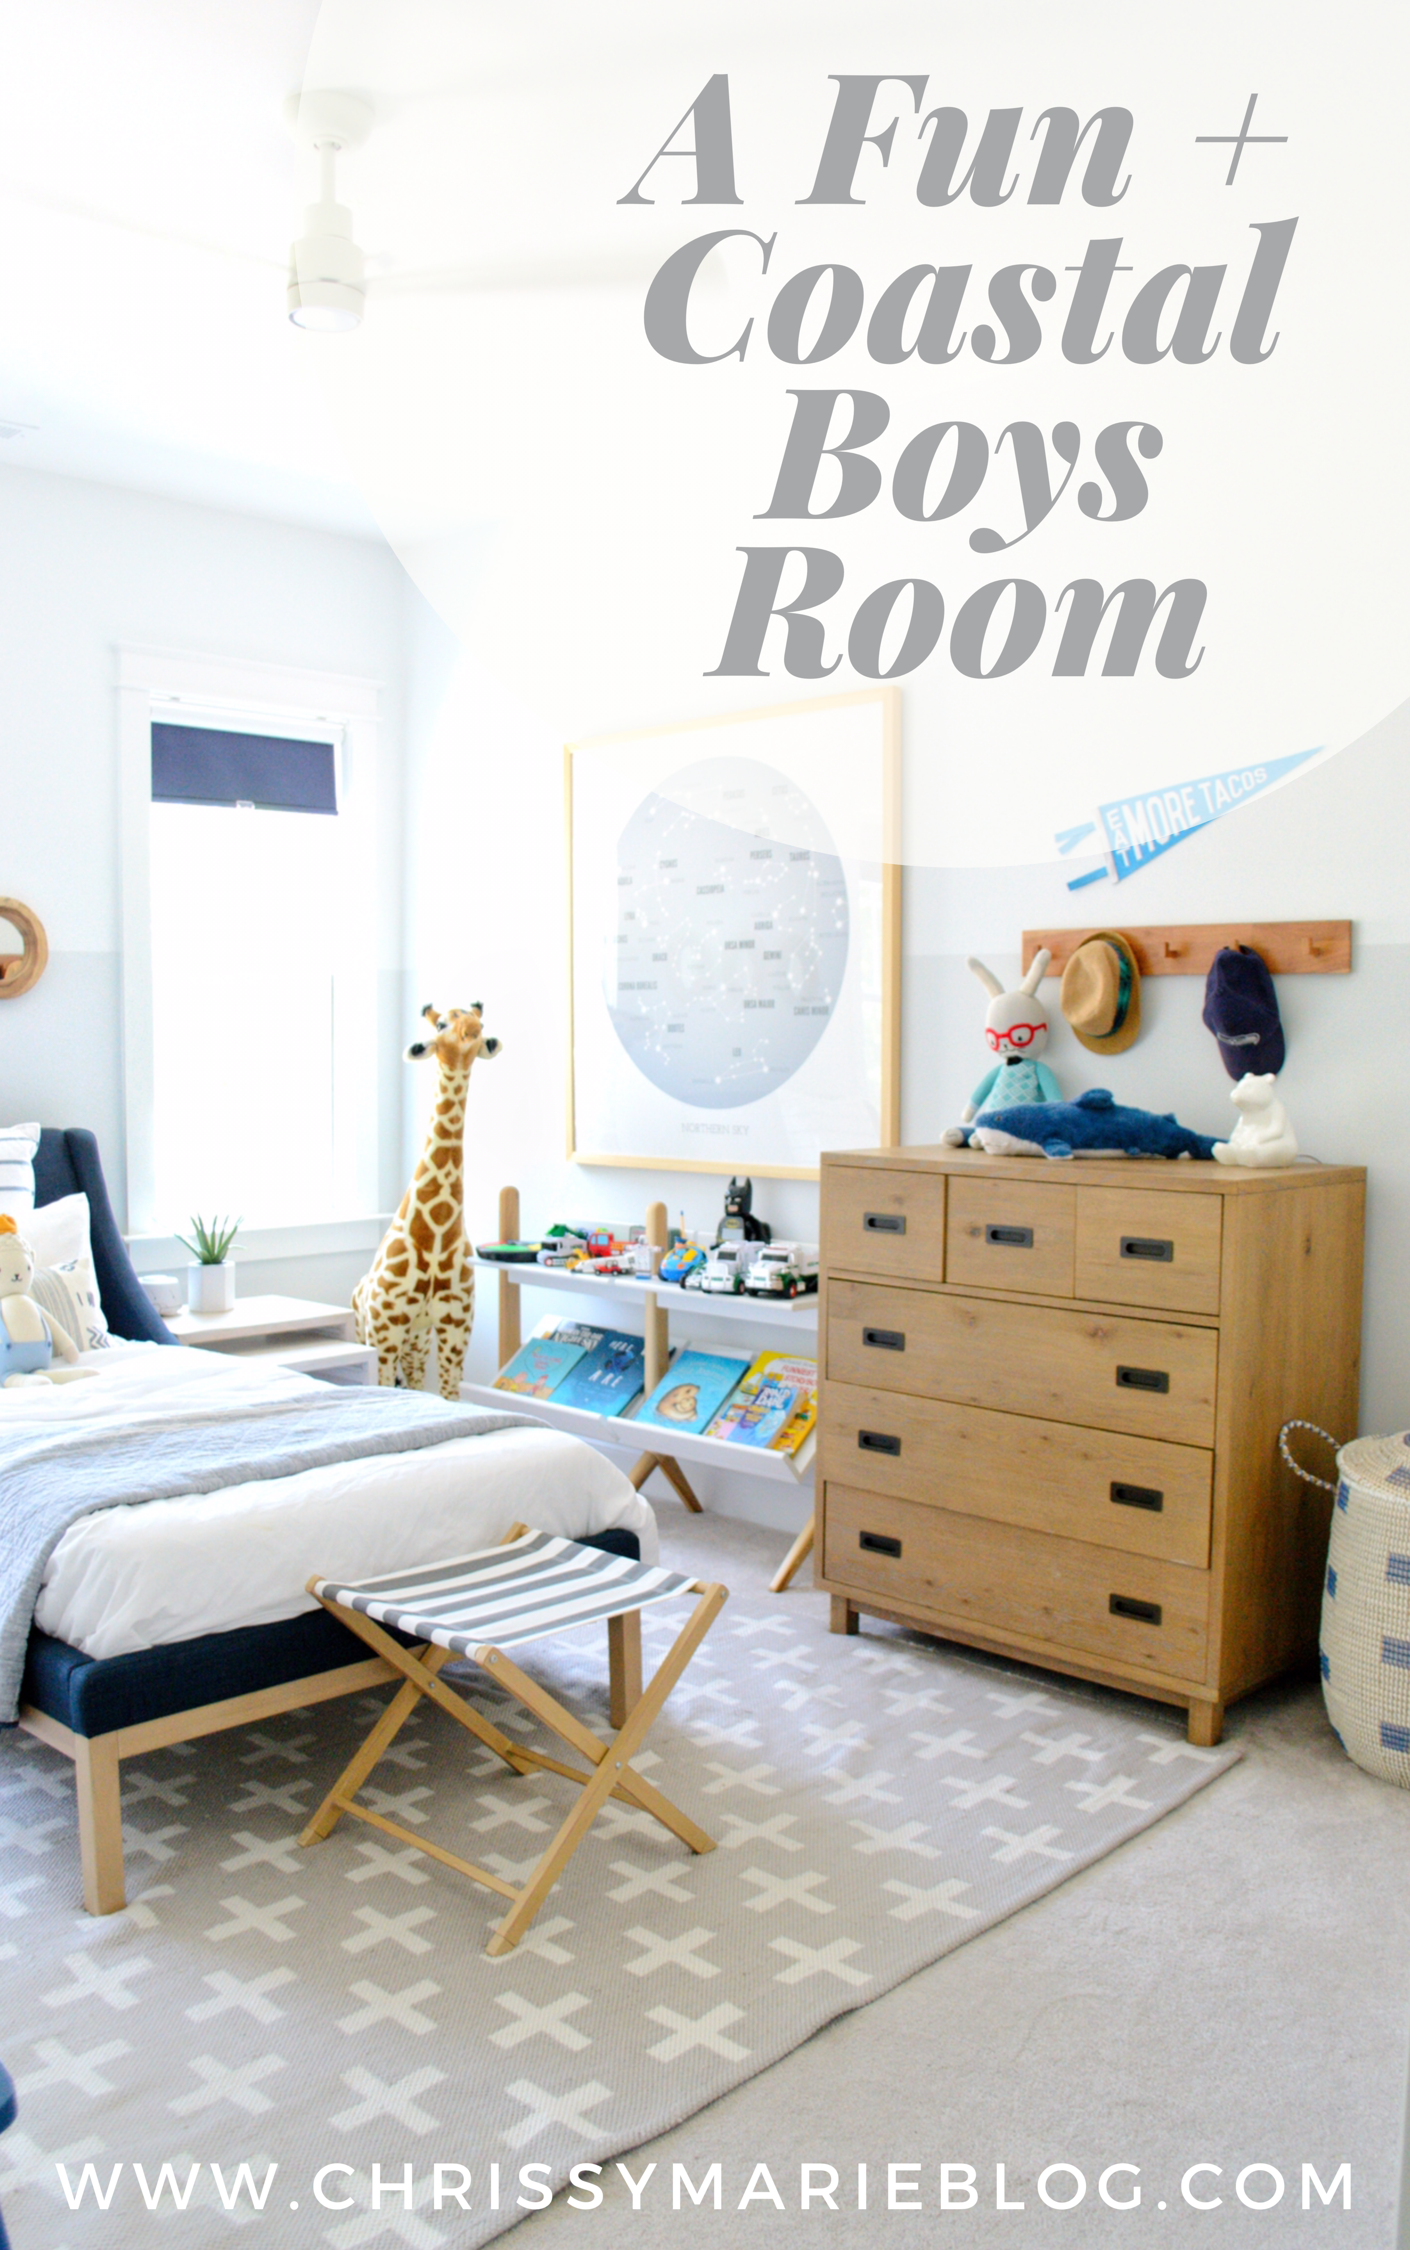 Sharing A Costal and Fun Boys Bedroom On The Blog